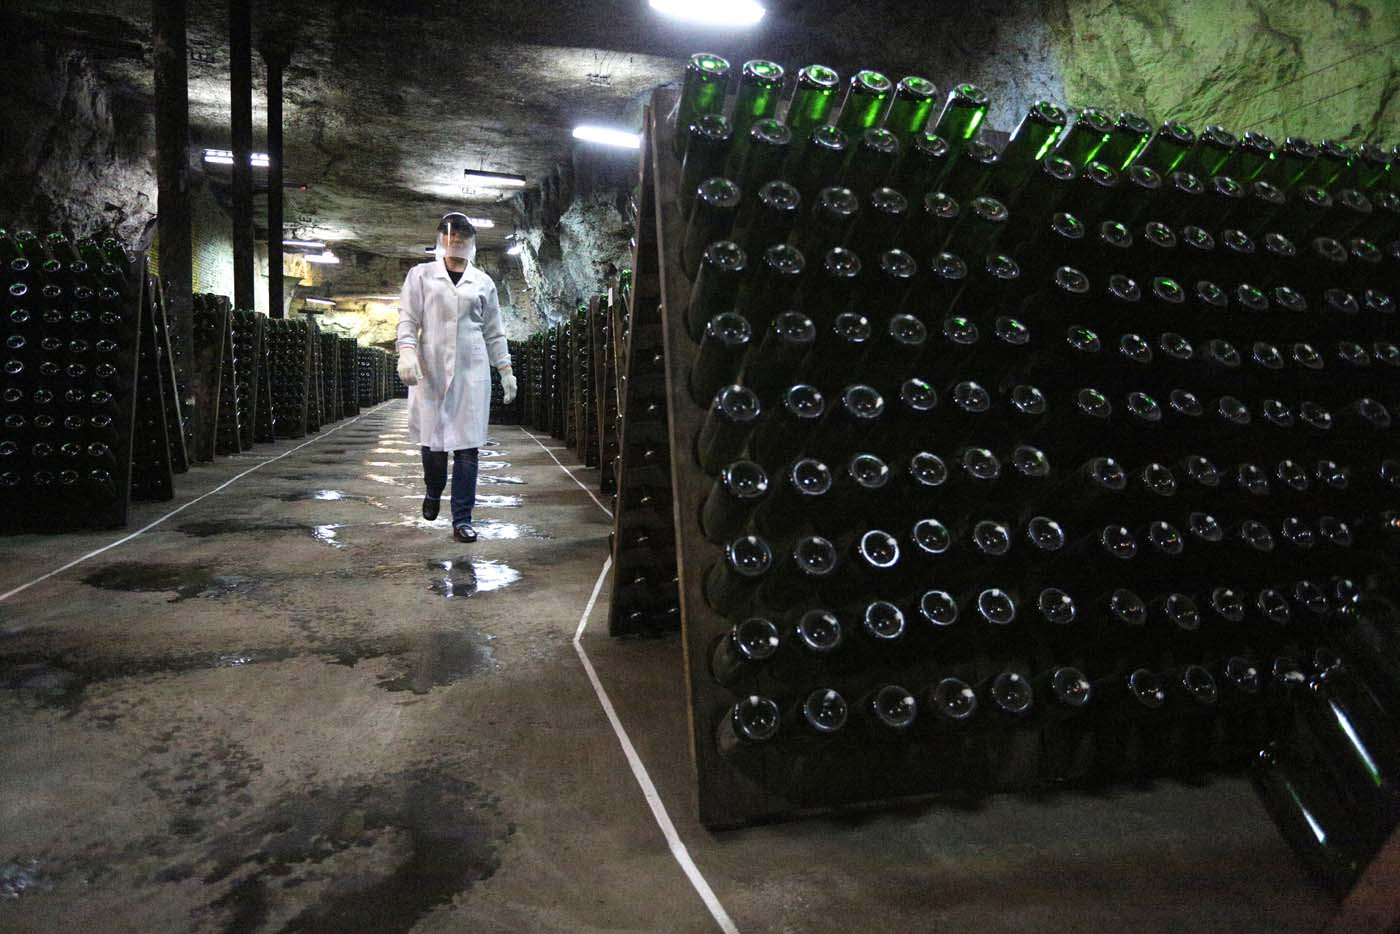 "An employee walks past bottles in the ""Artwinery"" winery firm in the eastern Ukrainian city of Bakhmut on July 12, 2017. The winery is located in a government-held town just two dozen kilometres (15 miles) from the frontline in Ukraine's low-level war, where the army and Russian-backed rebels continue to lob deadly artillery barrages at each other. The town spent around a month under rebel control in 2014, and in 2015 the frontline was so close that the town came under rebel shelling. But despite more than three years of fighting that has claimed some 10,000 lives, Nasyrov's employer, Artwinery, has never stopped production. / AFP PHOTO / Aleksey FILIPPOV"